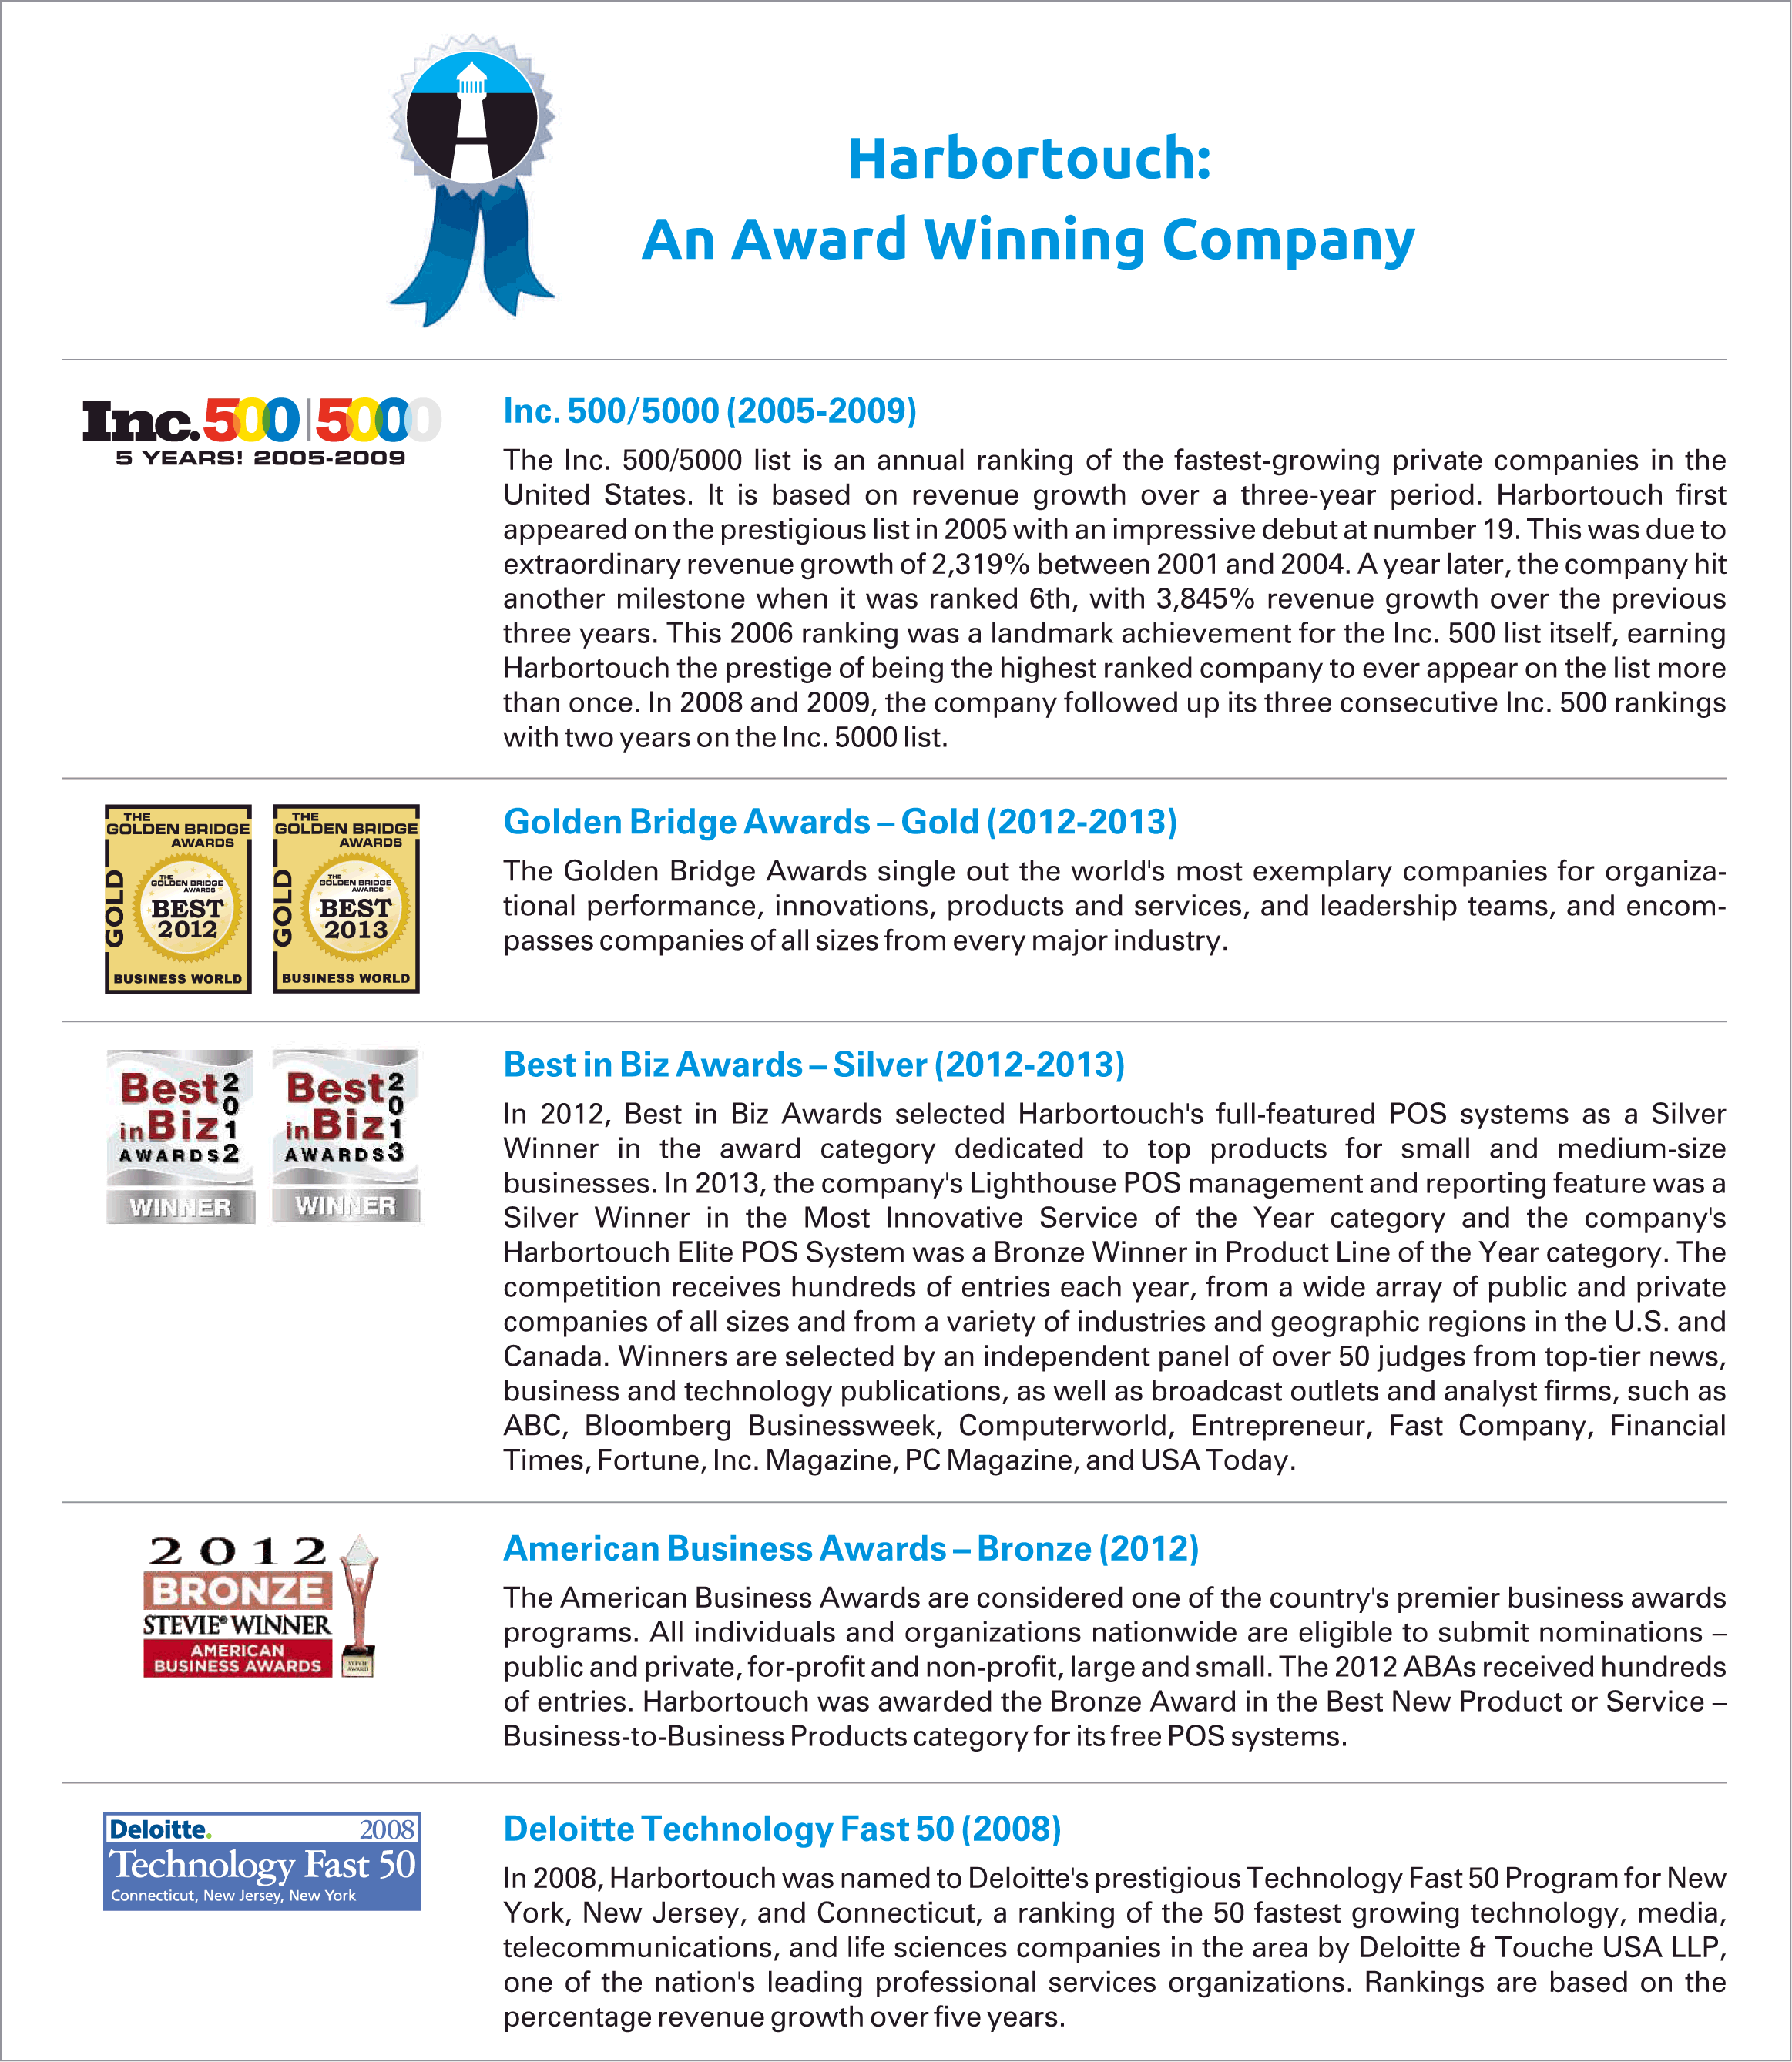 Harbortouch Award Winning Companywards